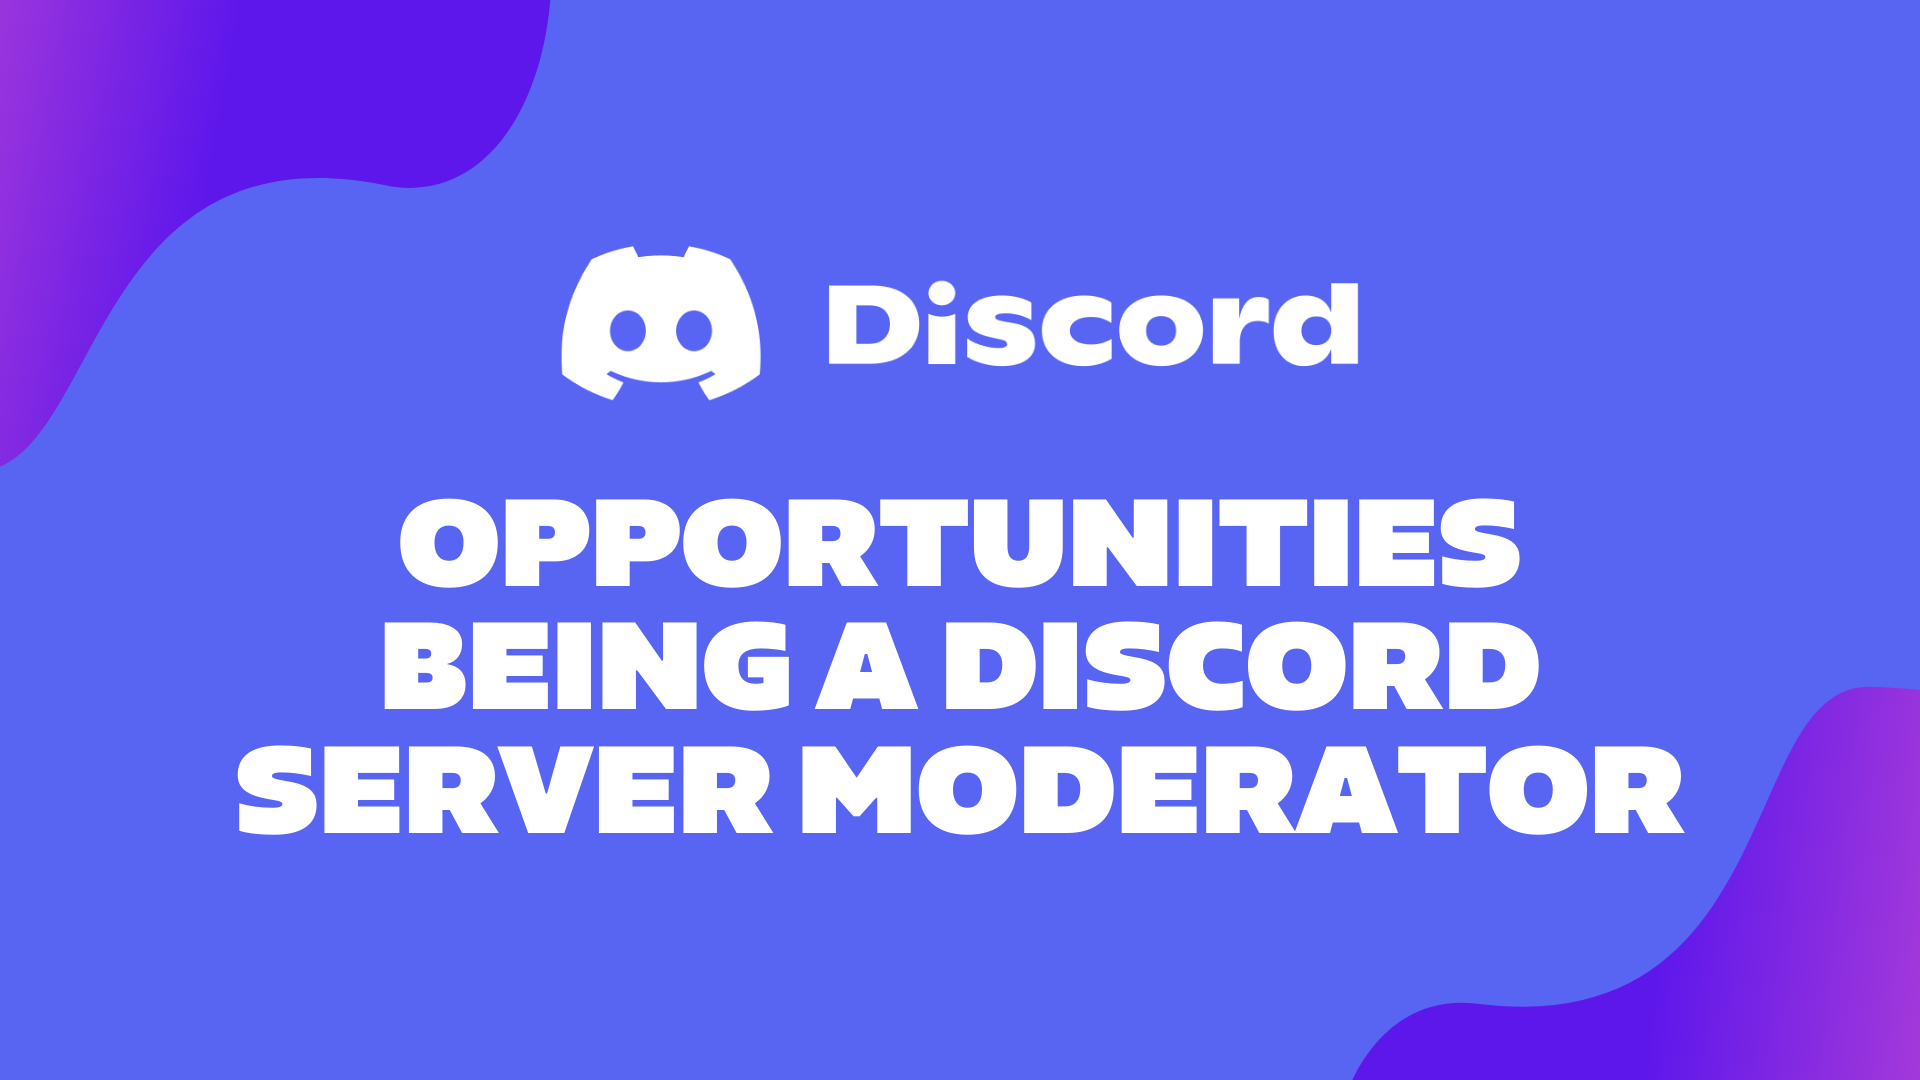 Become A Discord Moderator – Online Moderation & Opportunities